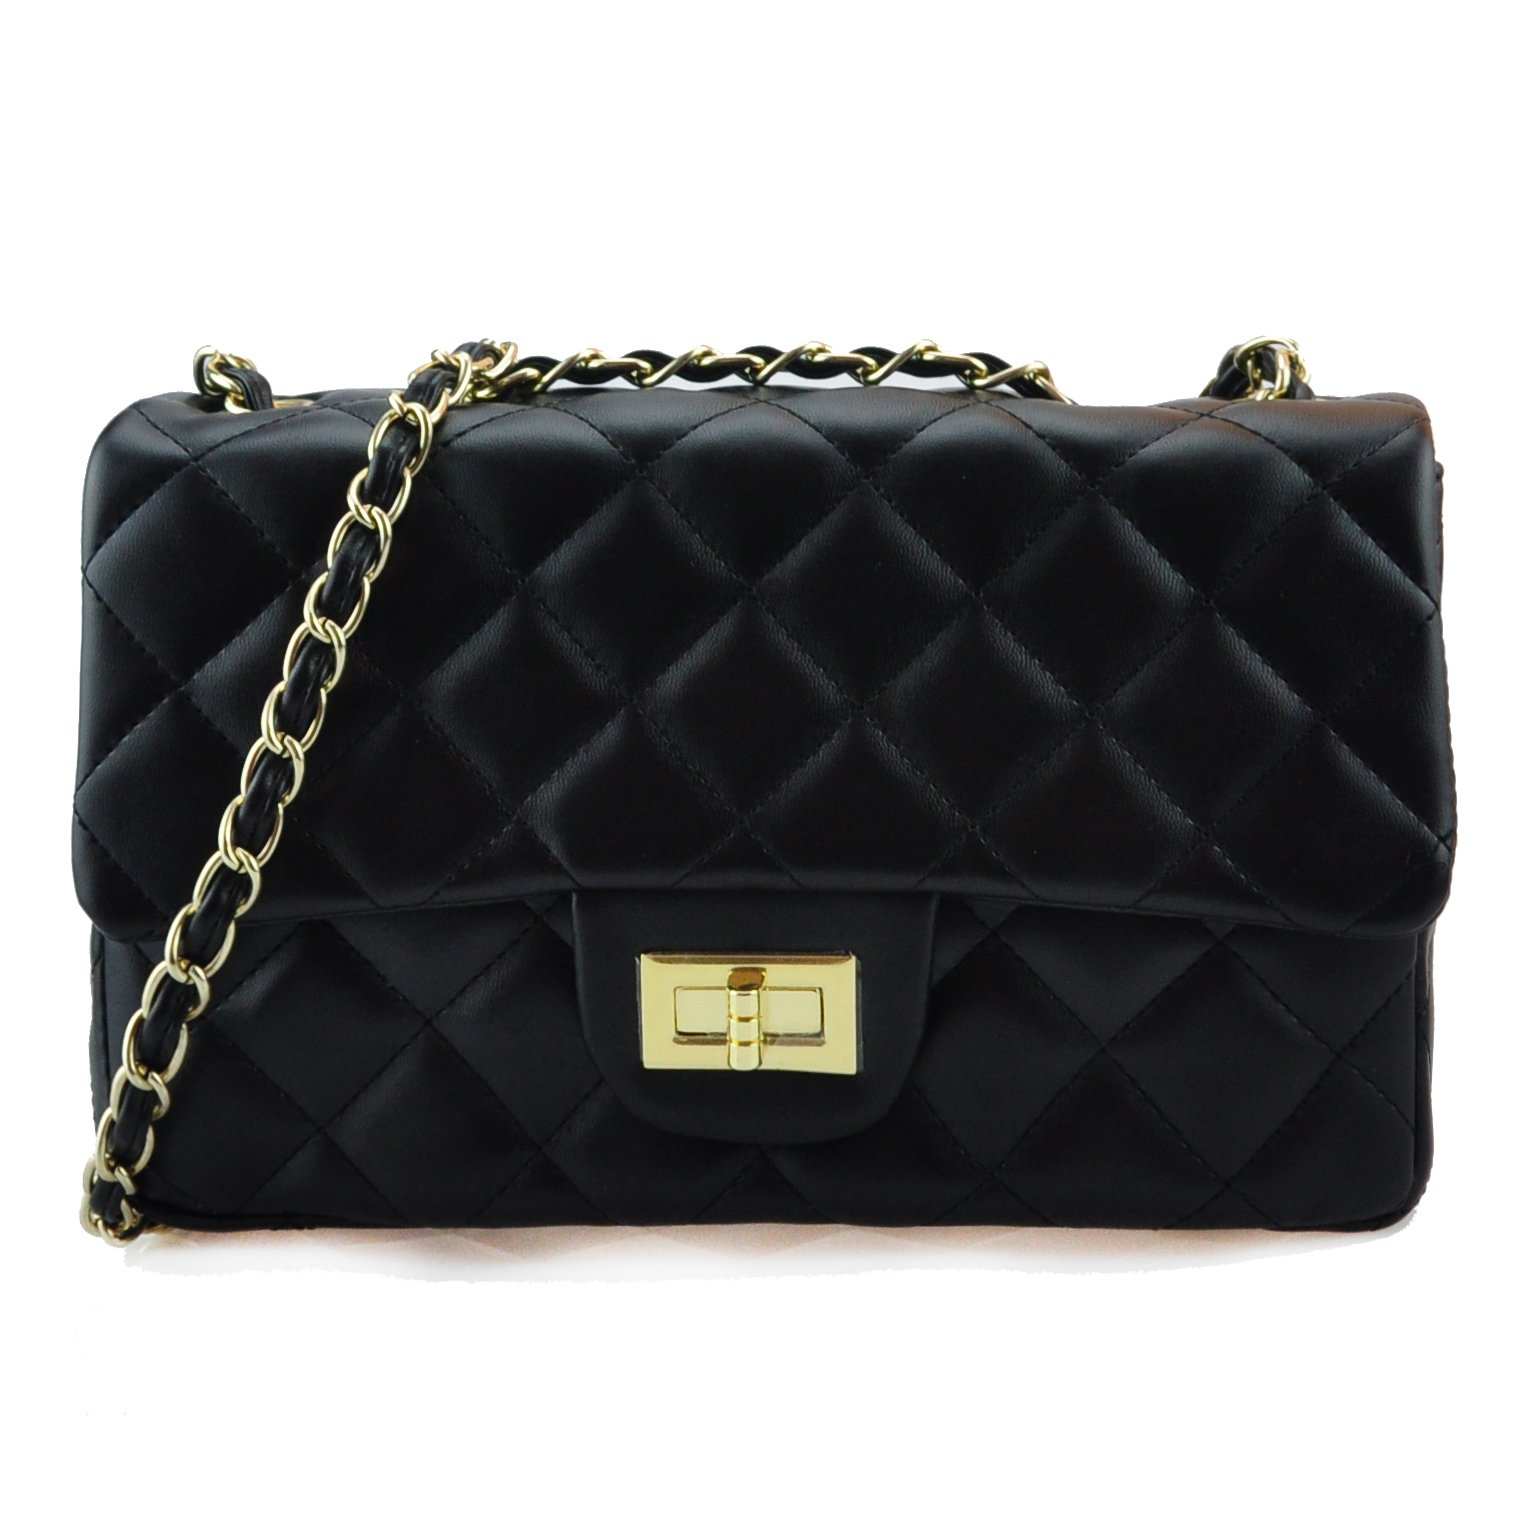 Volcanic Rock Women's Quilted PU Leather Cross-body Bag Girls Purse & Handbags Chain Small Messenger Bag (918 large black)